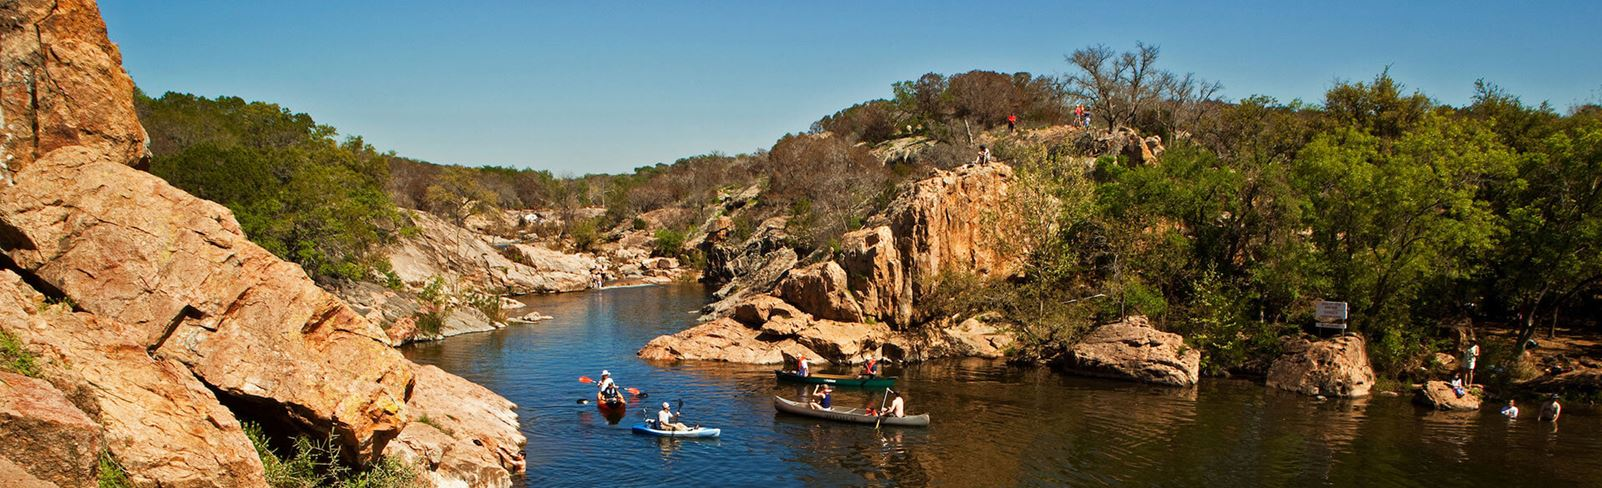 Rancho Sienna canoes and kayaks on water at Inks Lake State Park